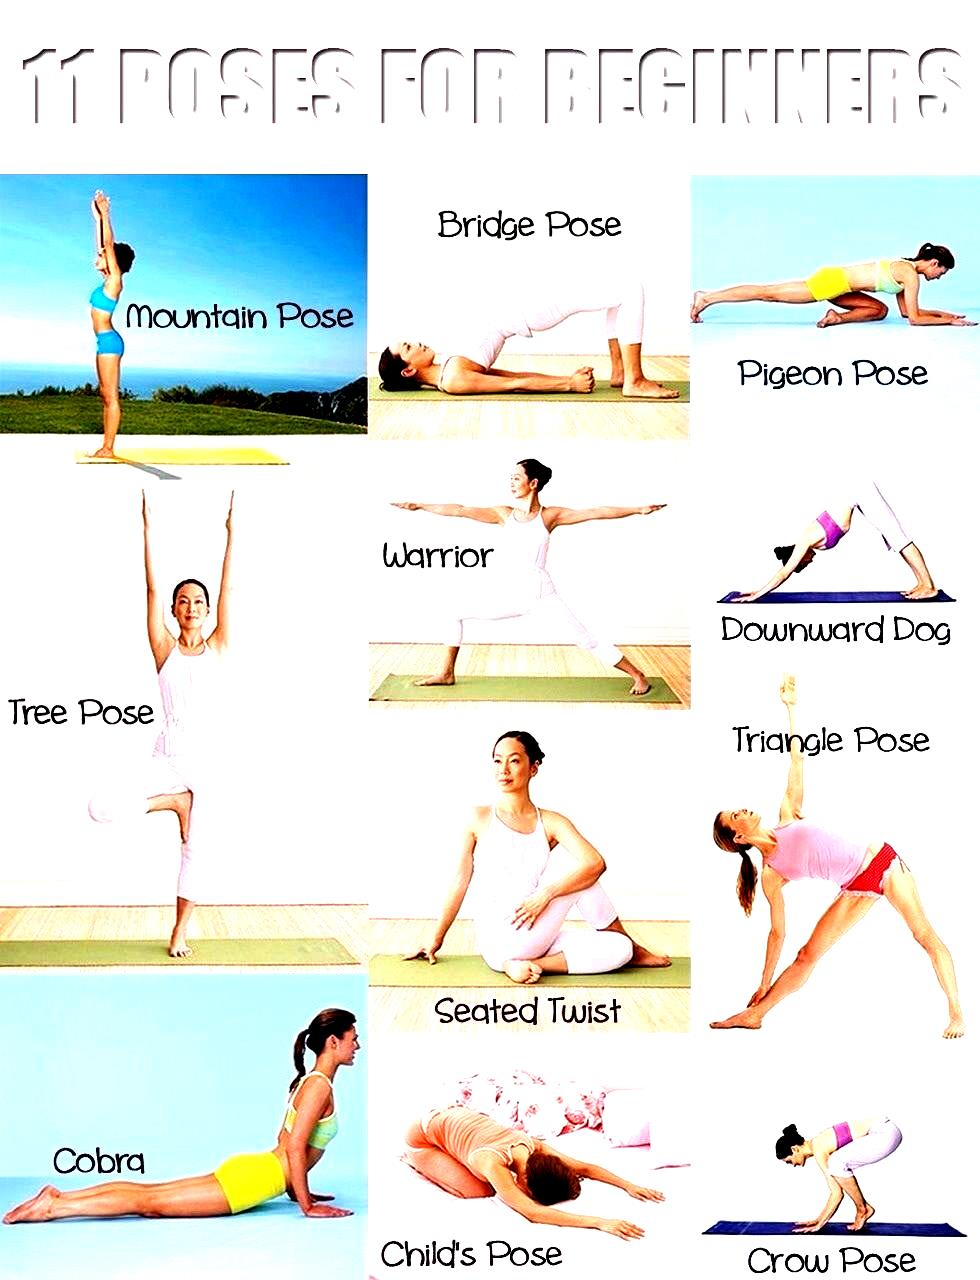 All Yoga Poses And Names Bing Images